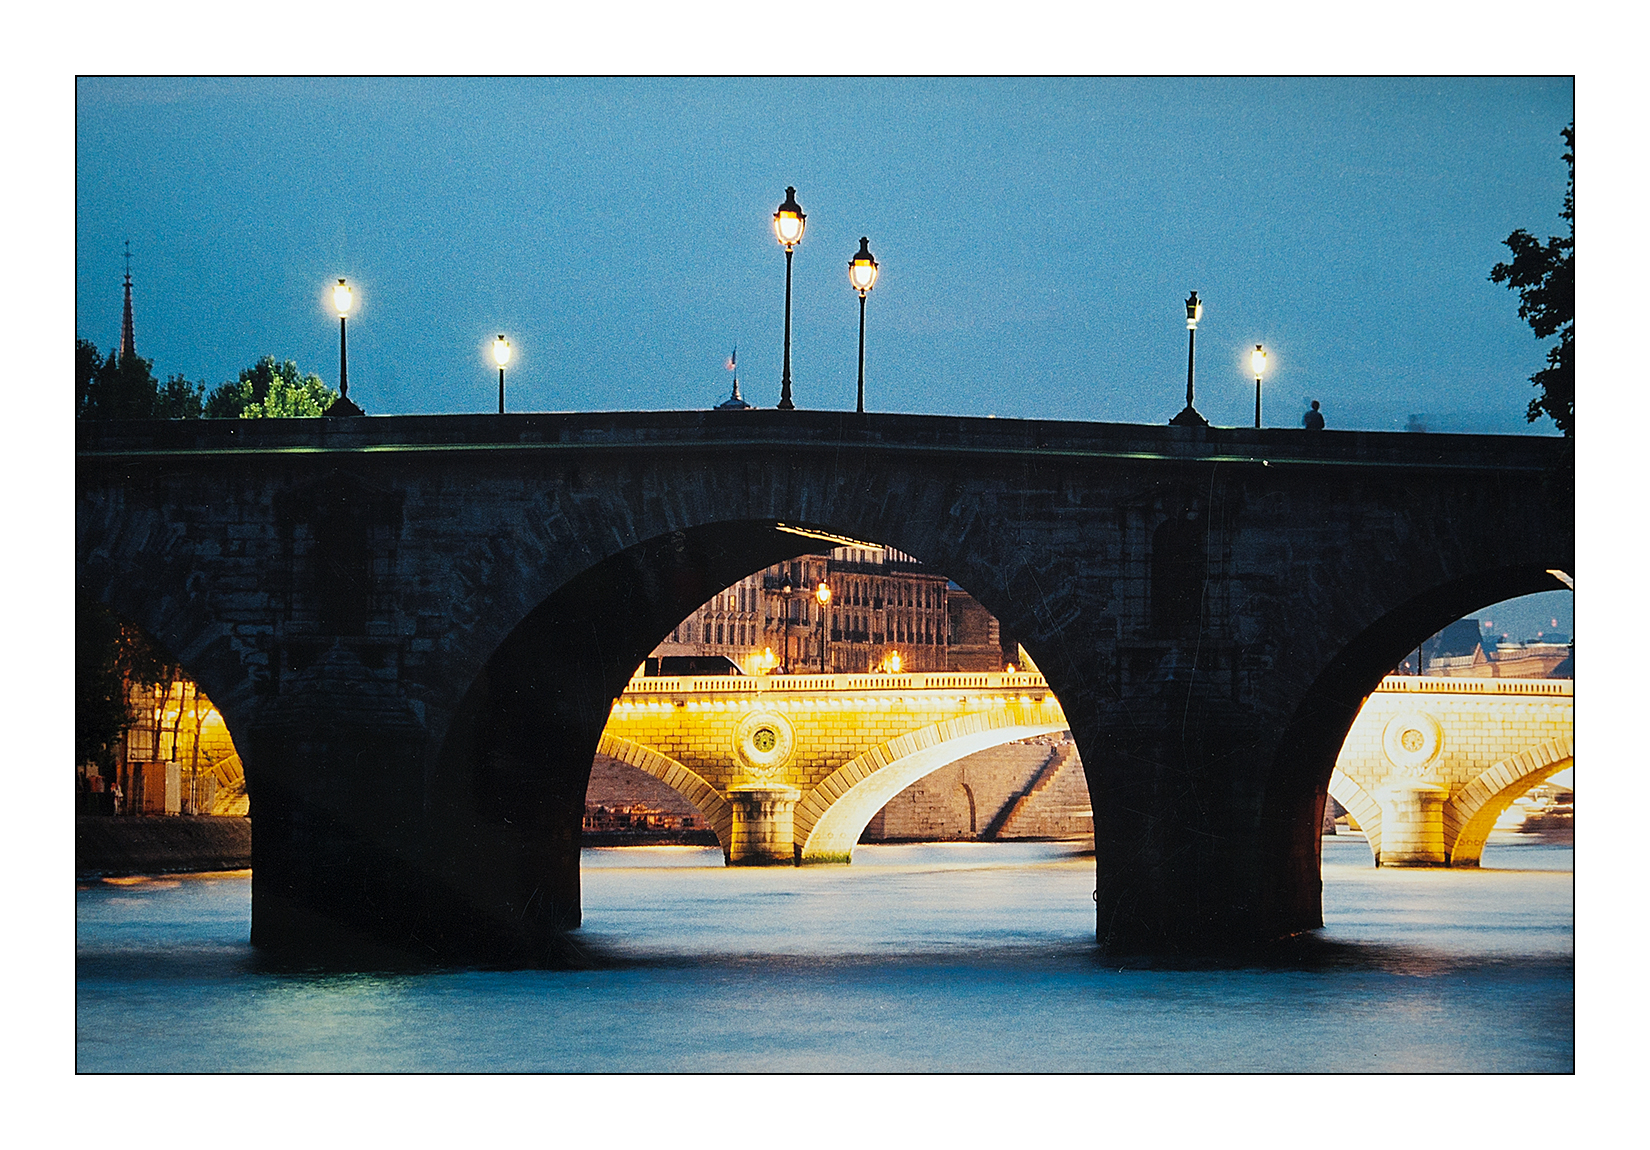 pont-paris-nuit-seine-ile-cite-drapeau-france